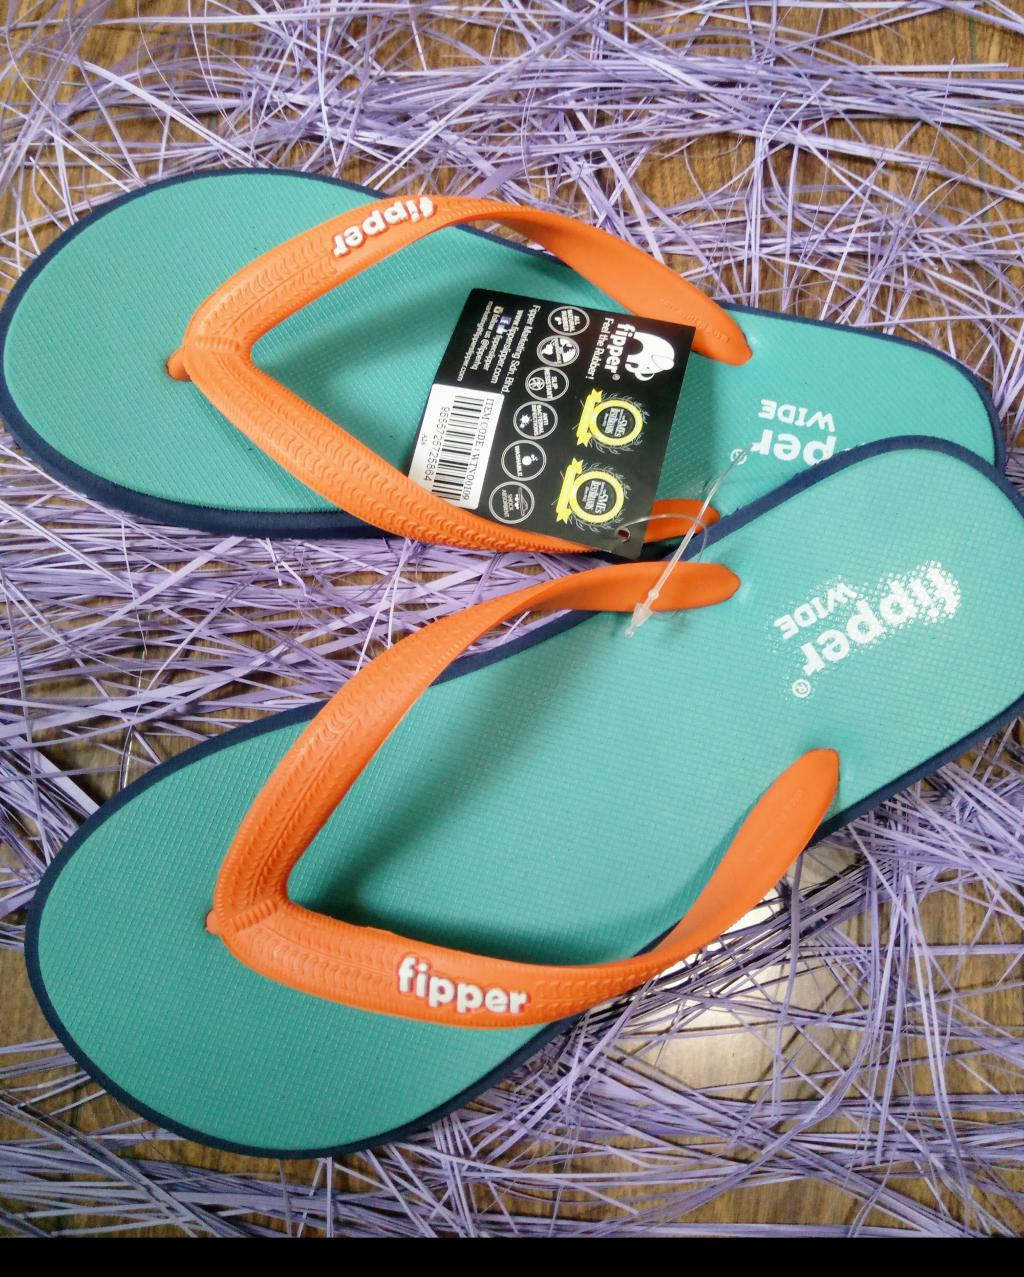 227b6982d TurquoiseGreenBeltBlackBottomFluorescentGreenEdge; [fipper wide] flip flops  natural rubber vacation authentic